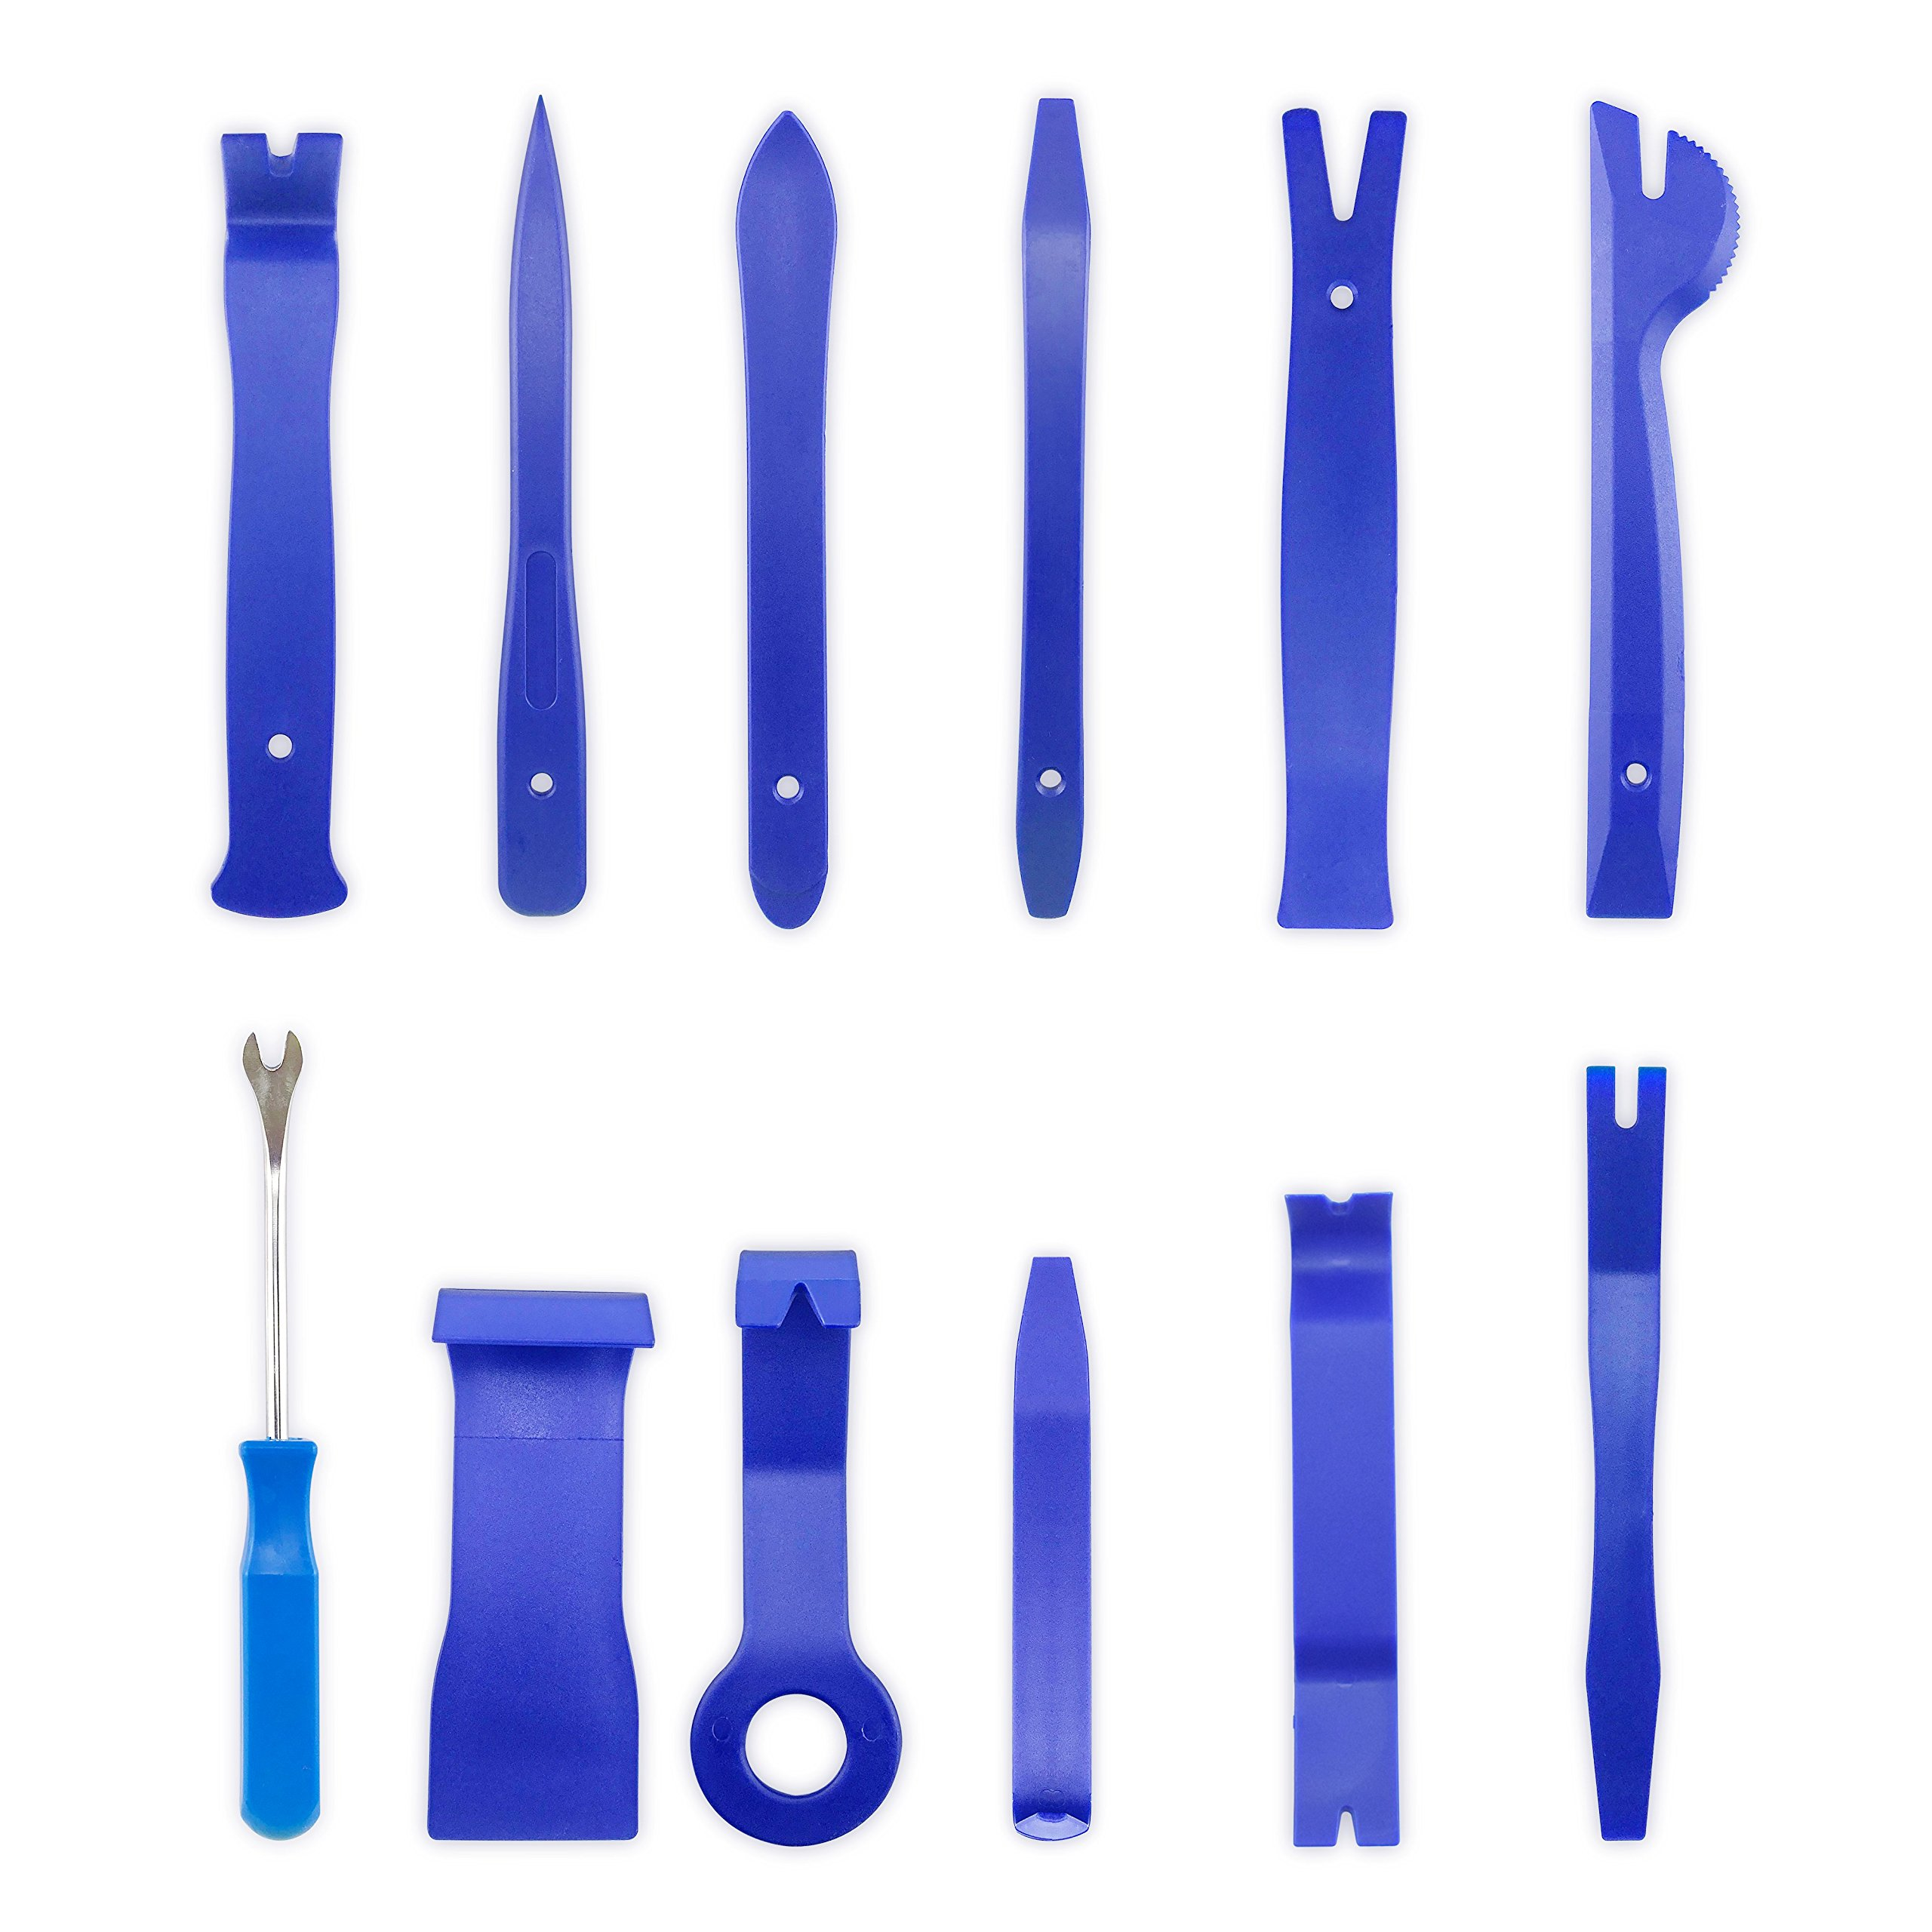 homEdge Auto Trim Removal Kits of 12 Pcs, Tool Kits for Car Radio Installation, Upholstery Removal Kit Pry Bar Scraper Set-Blue by homEdge (Image #1)